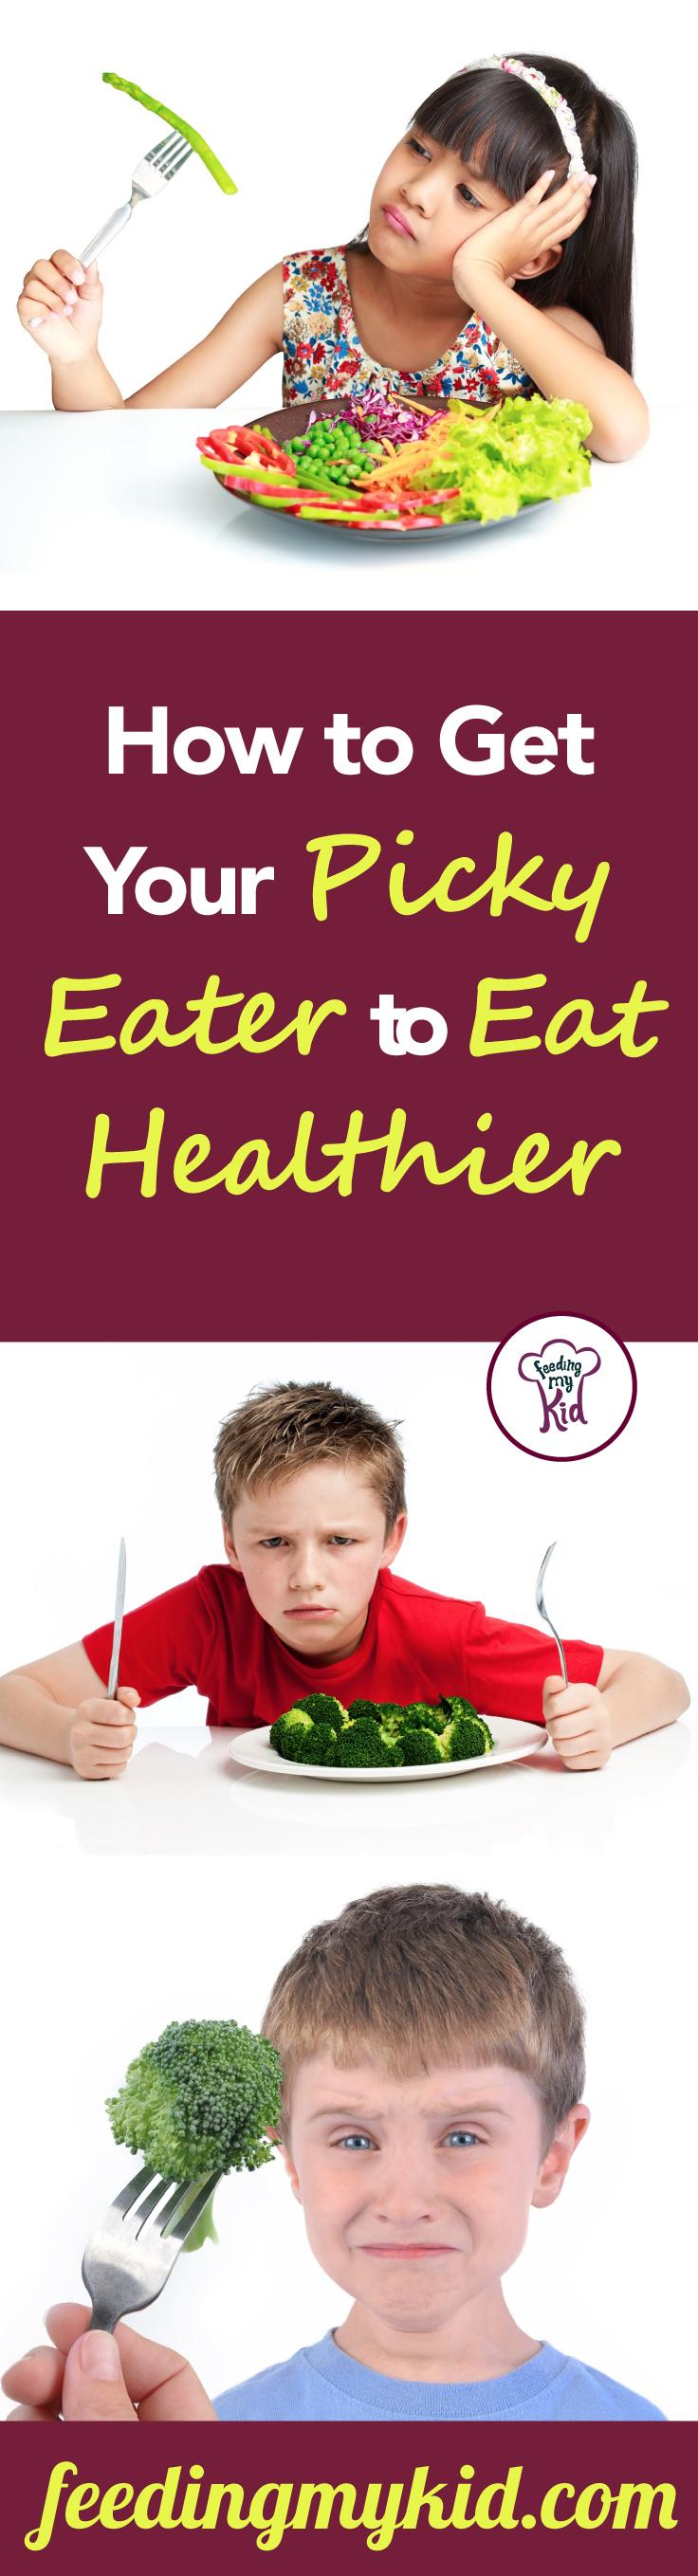 How to Get Your Picky Eater to Eat Healthier - When it comes to picky eating there are a number of ways to combat it. These methods require a lifestyle change. So get started today by planting a garden, cooking with your kids or creating healthy pre-made snacks! You won't regret it! Read more here!